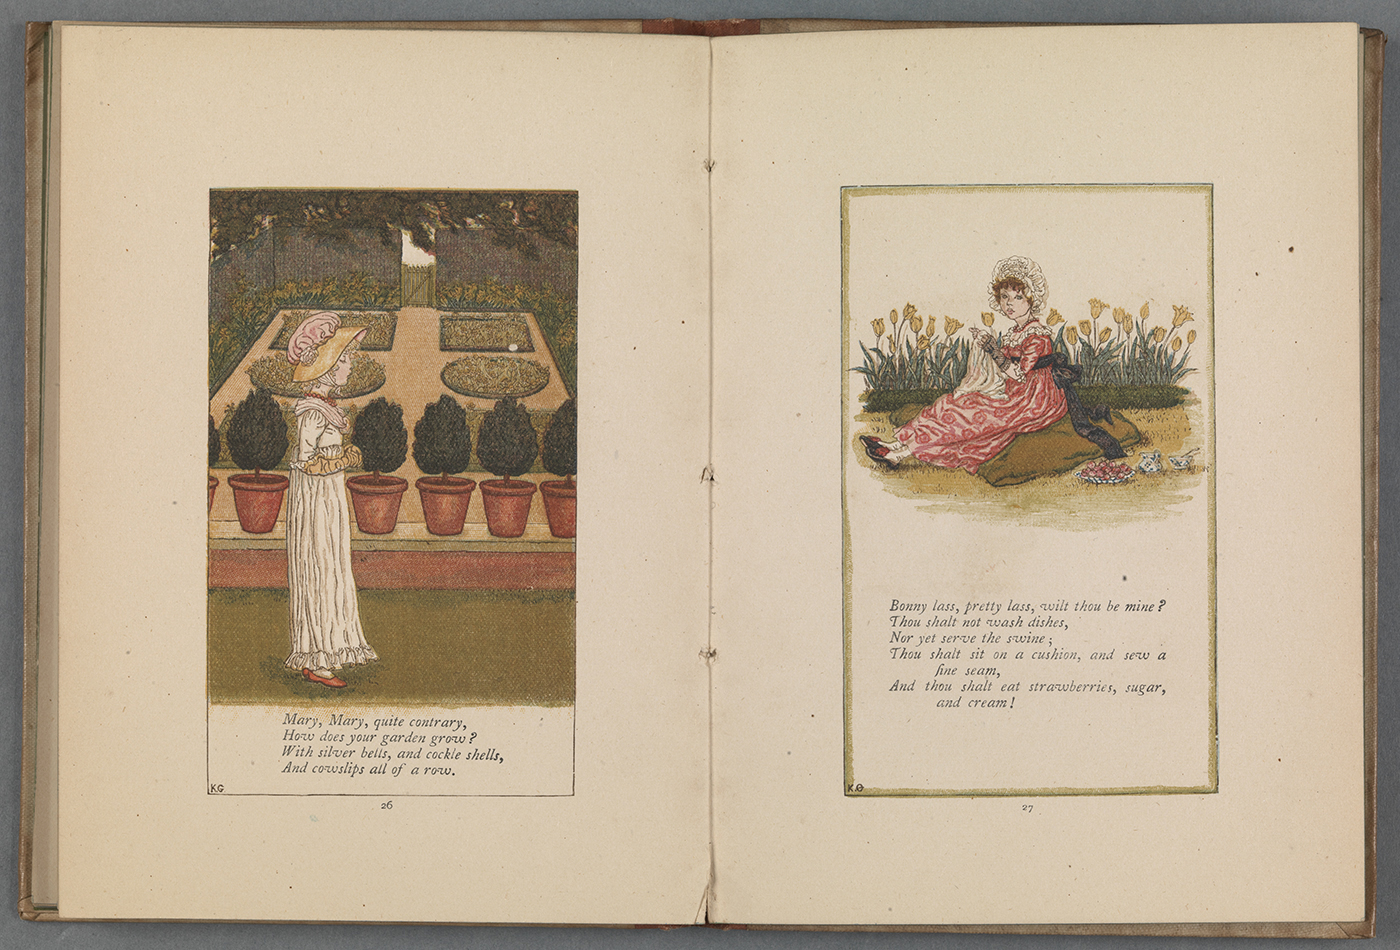 Opening featuring two nursery rhymes with Greenaway's illustrations